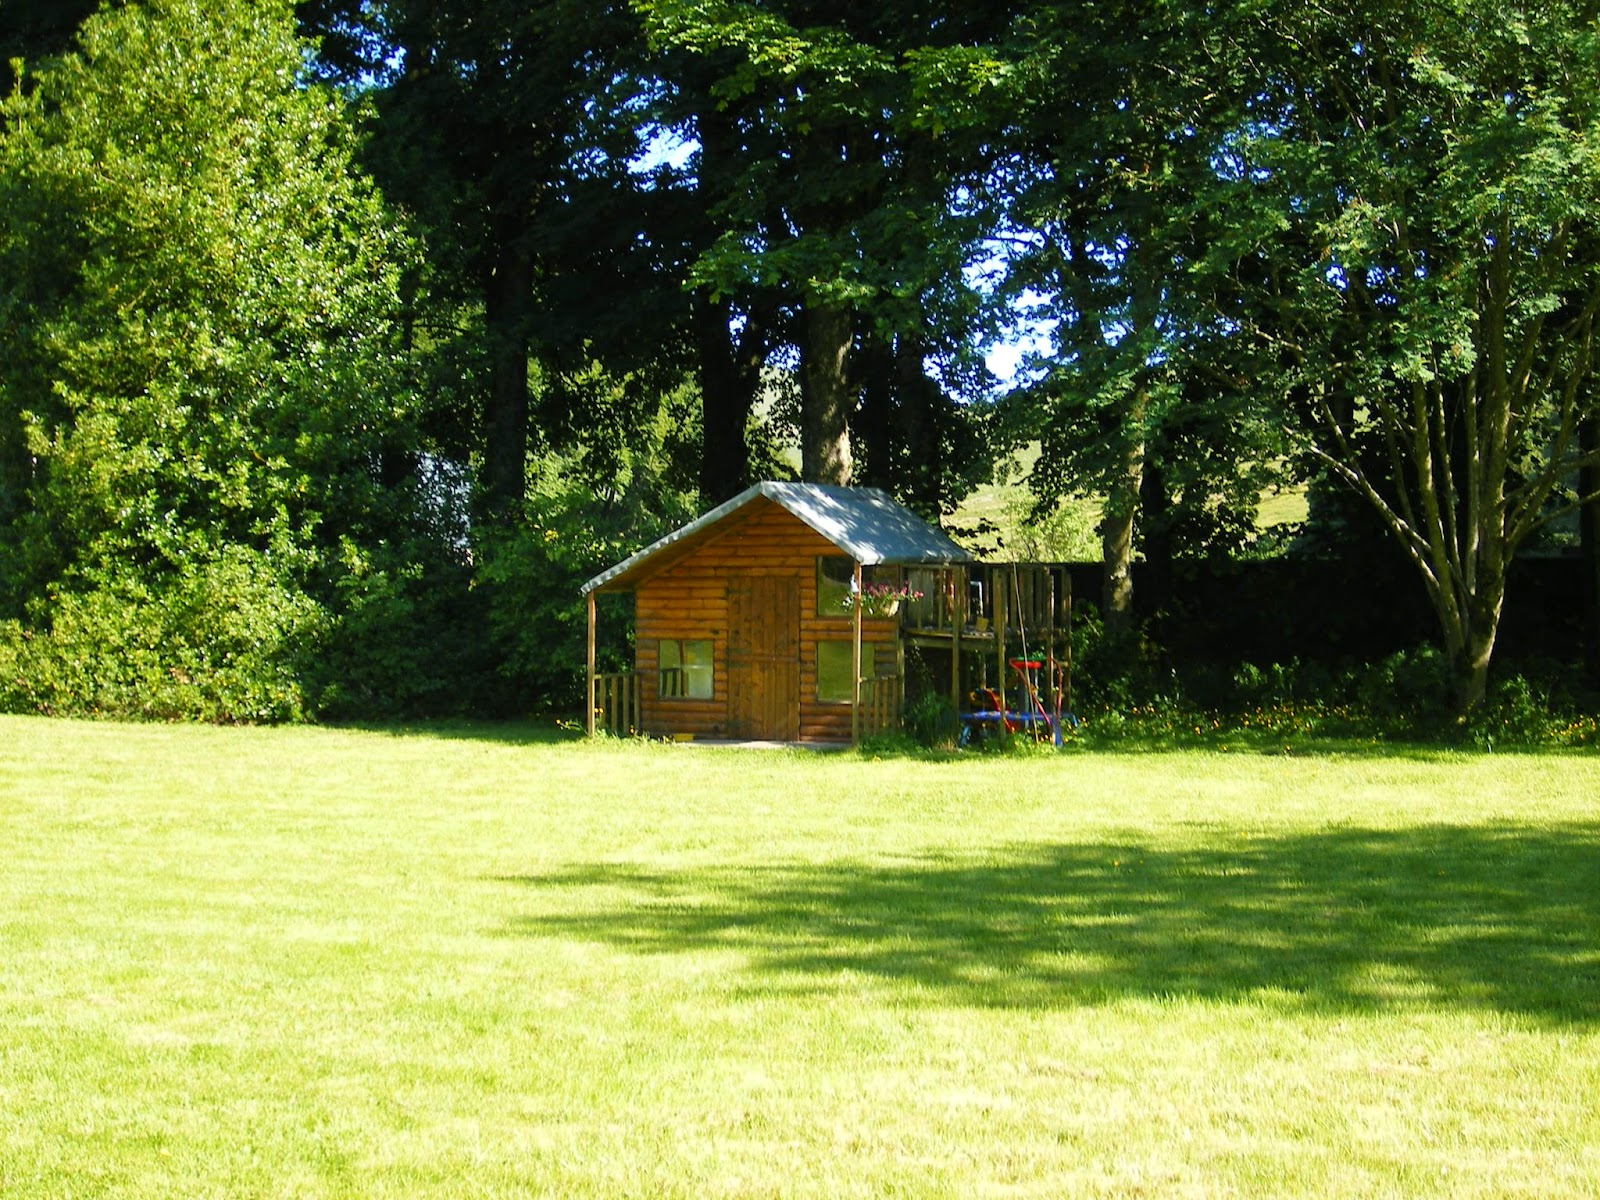 country garden with trees, lawn and playhouse in summer